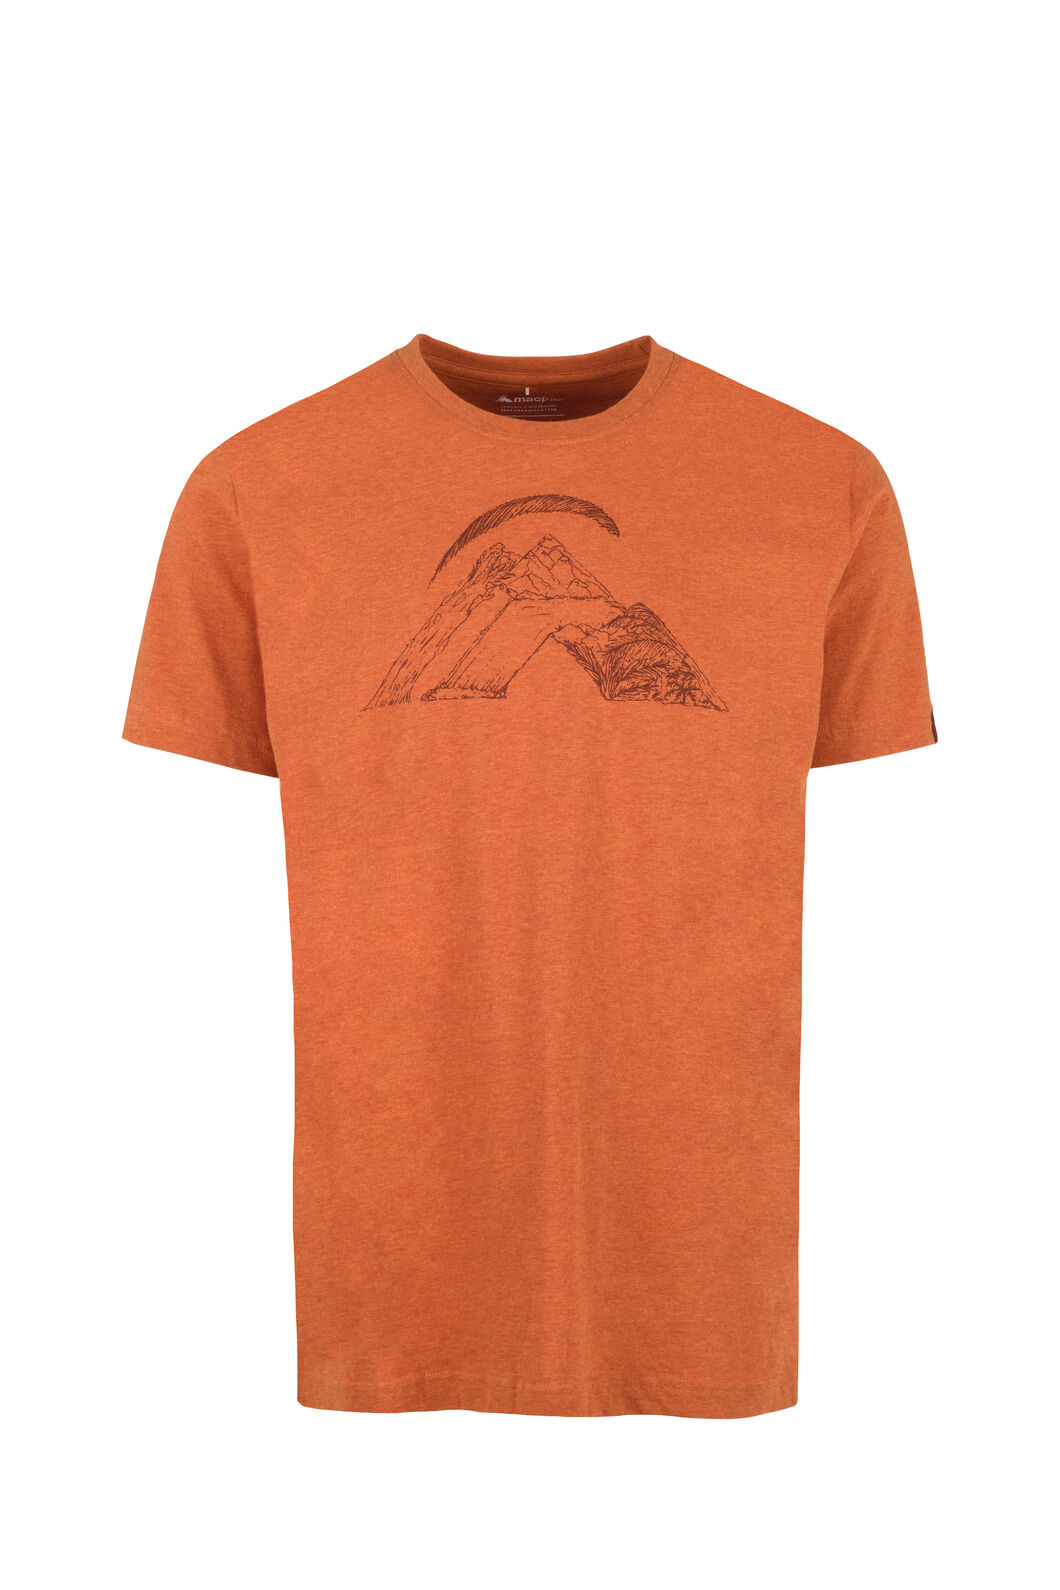 Macpac Nature Organic Tee — Men's, Burnt Orange, hi-res